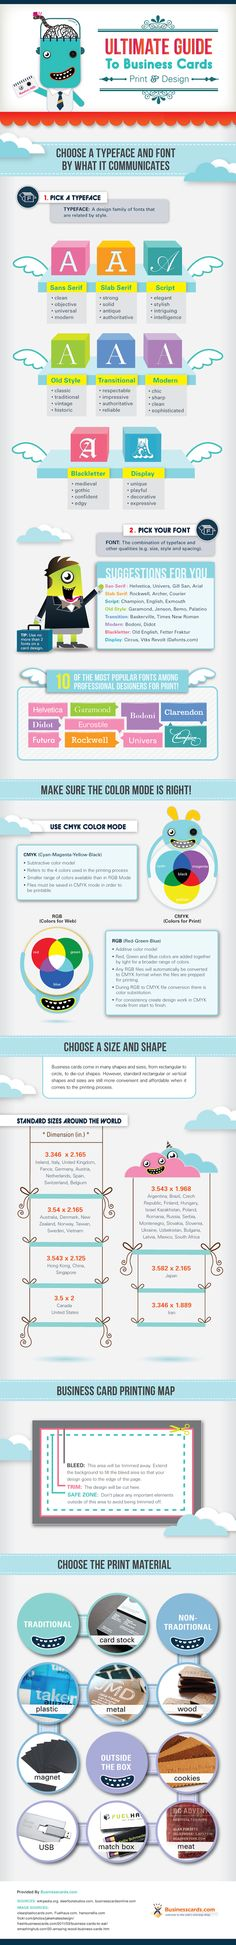 Infographic: The Ultimate Guide To Creating A Good Business Card - DesignTAXI.com